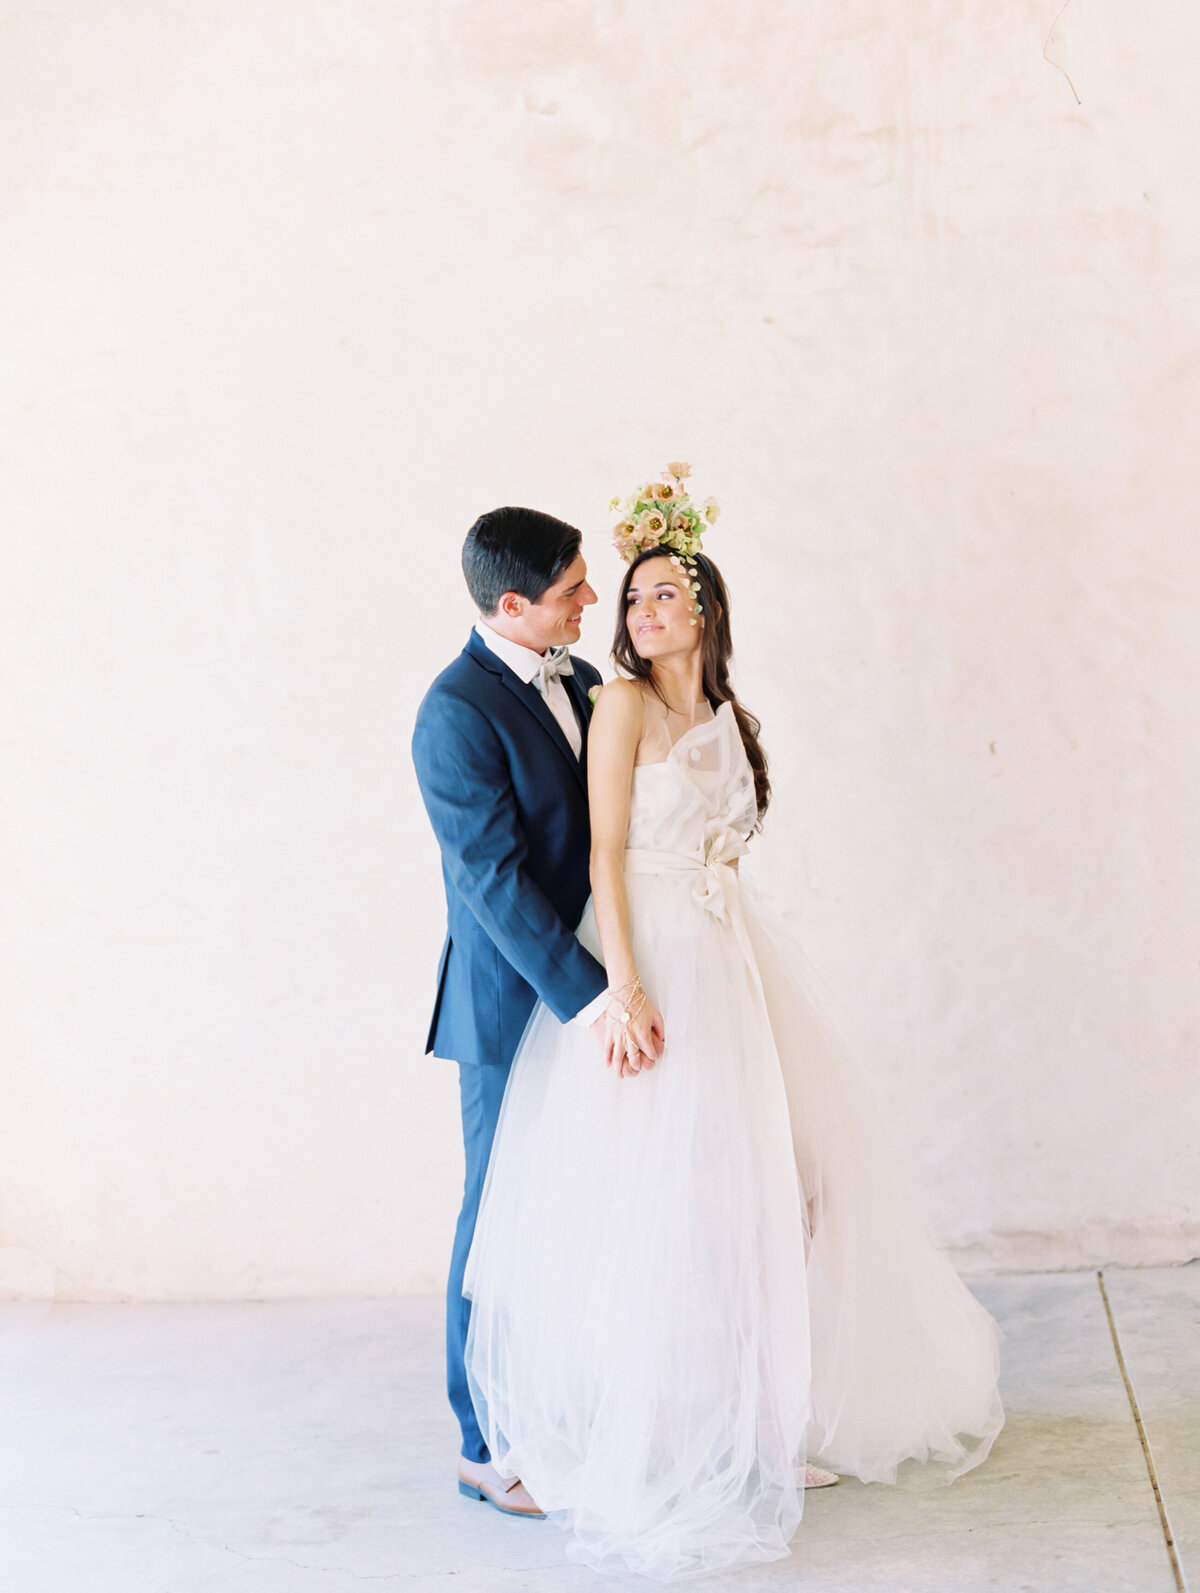 TiffaneyChildsPhotography-CaliforniaWeddingPhotographer-Clara+Alexandre-SunstoneVilla-91